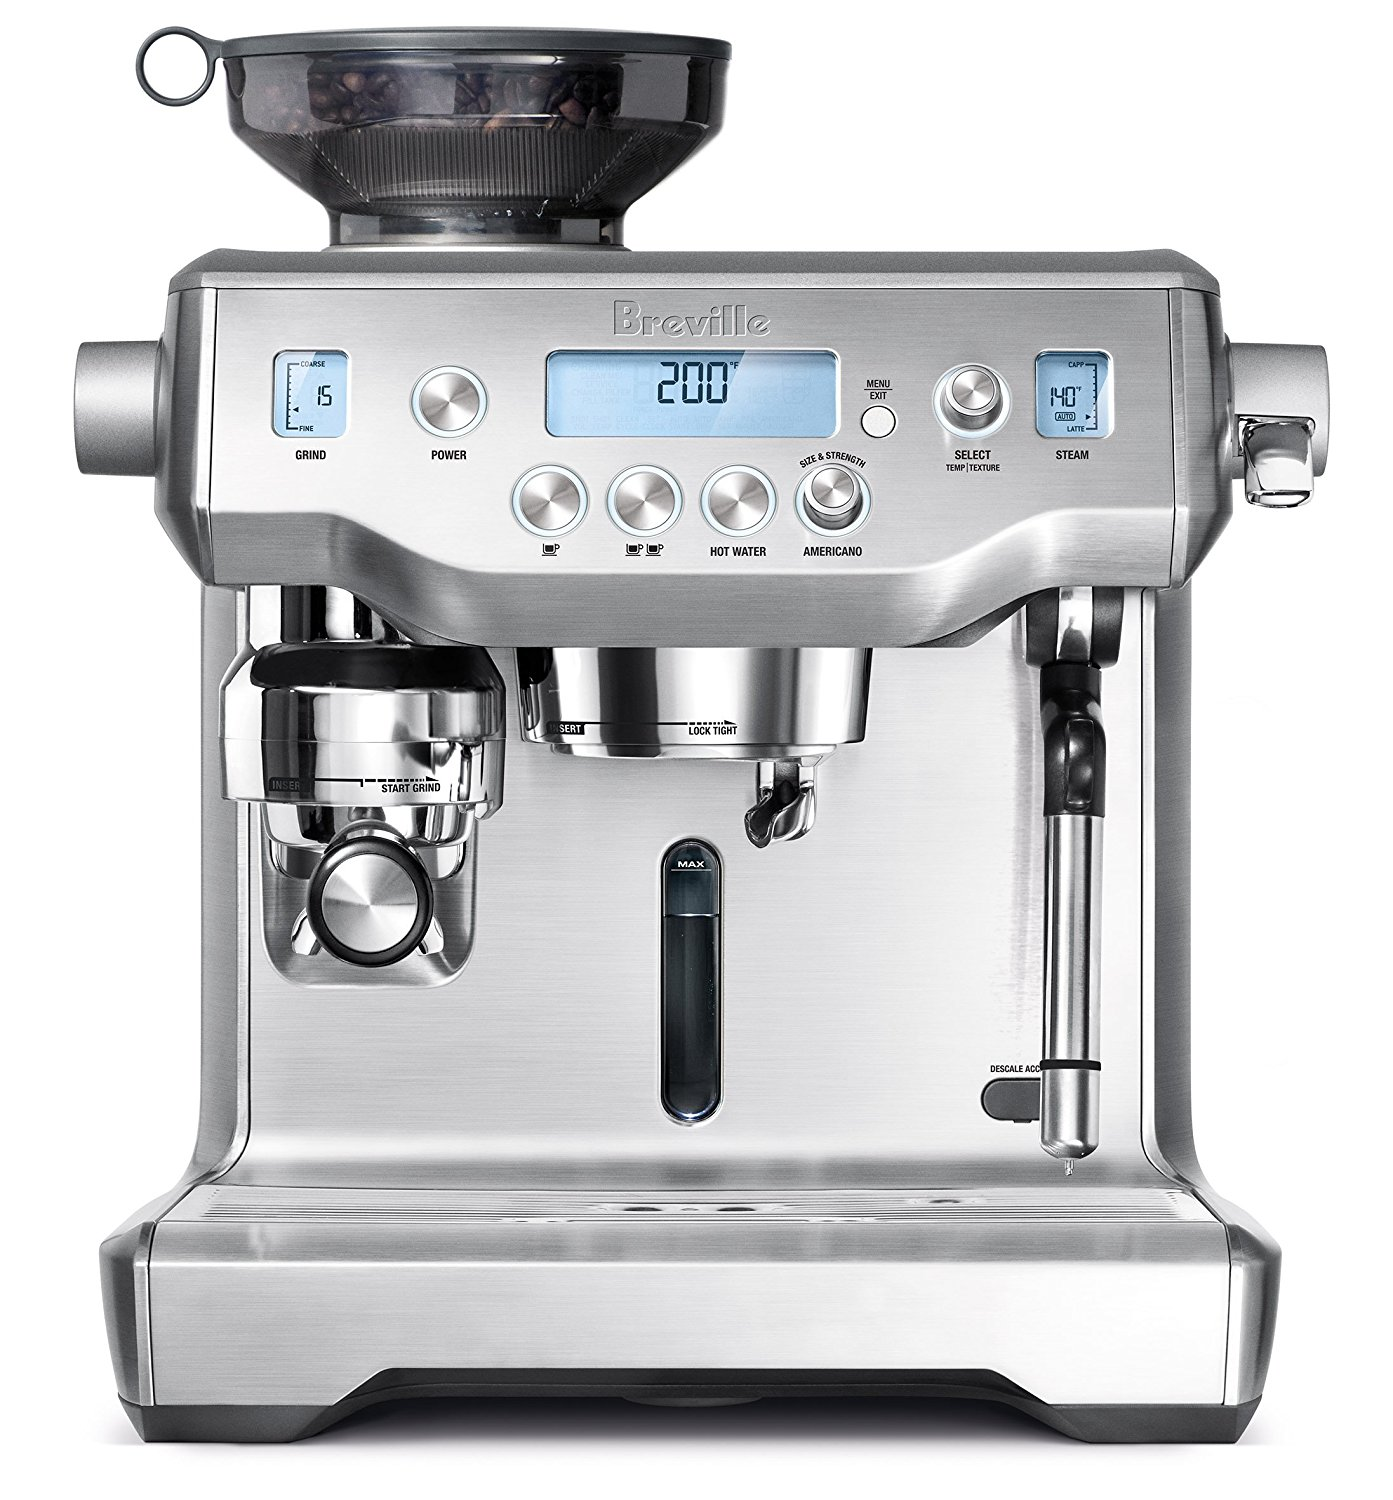 Top Coffee Machine Review